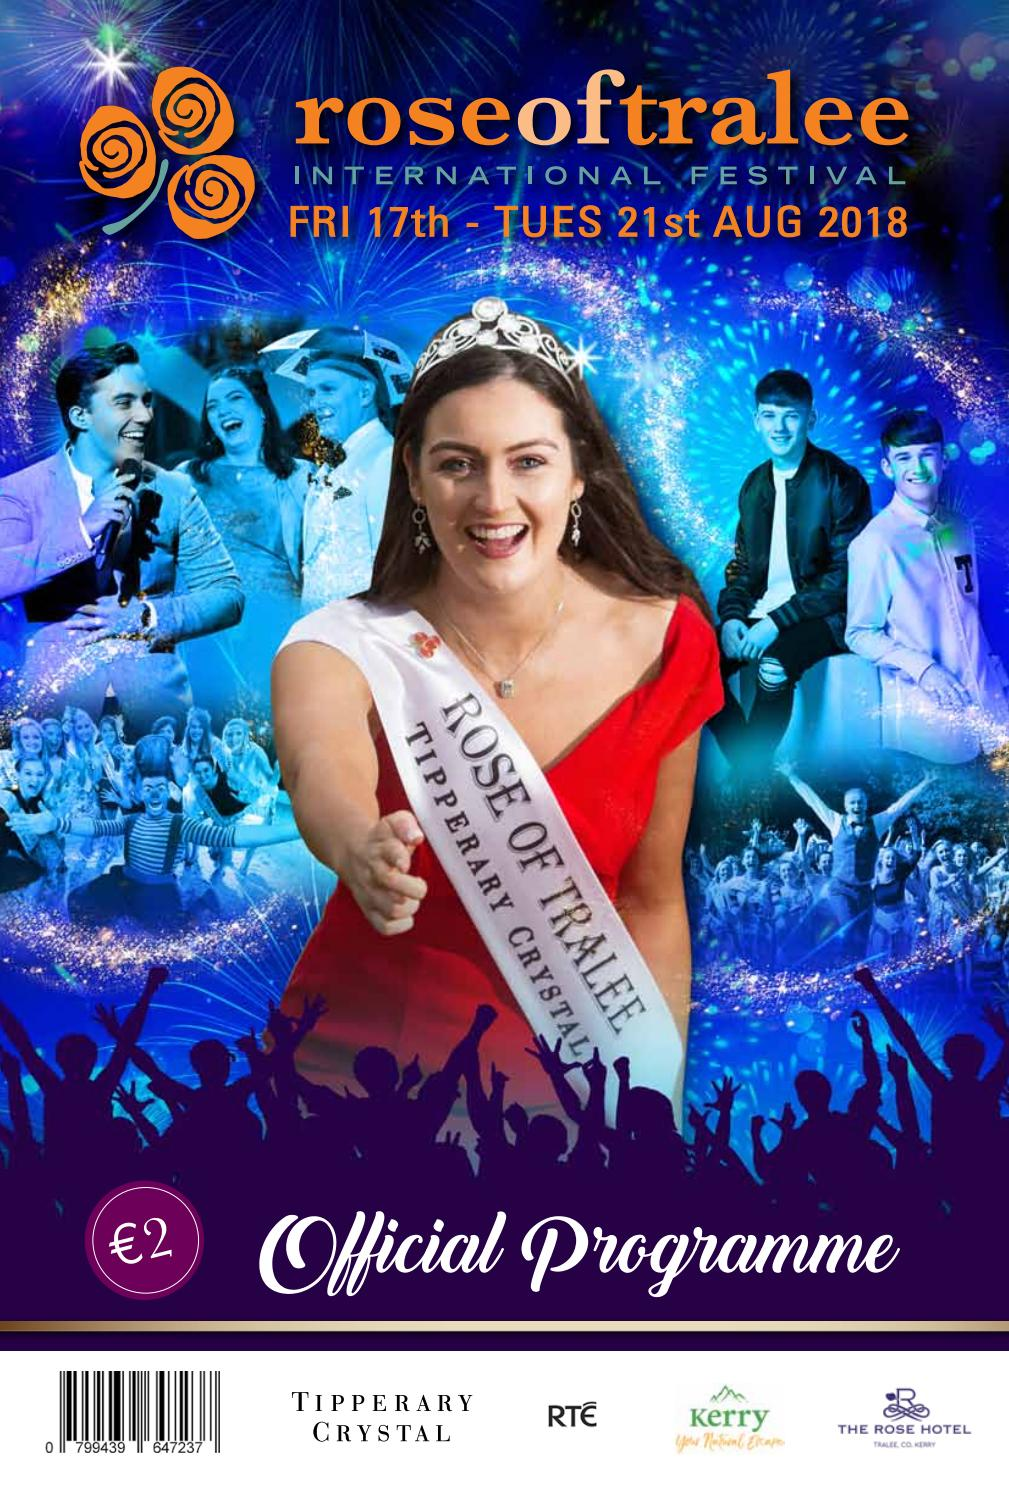 Rose Of Tralee International Festival Official Programme 2018 By Rose Of Tralee International Festival Issuu